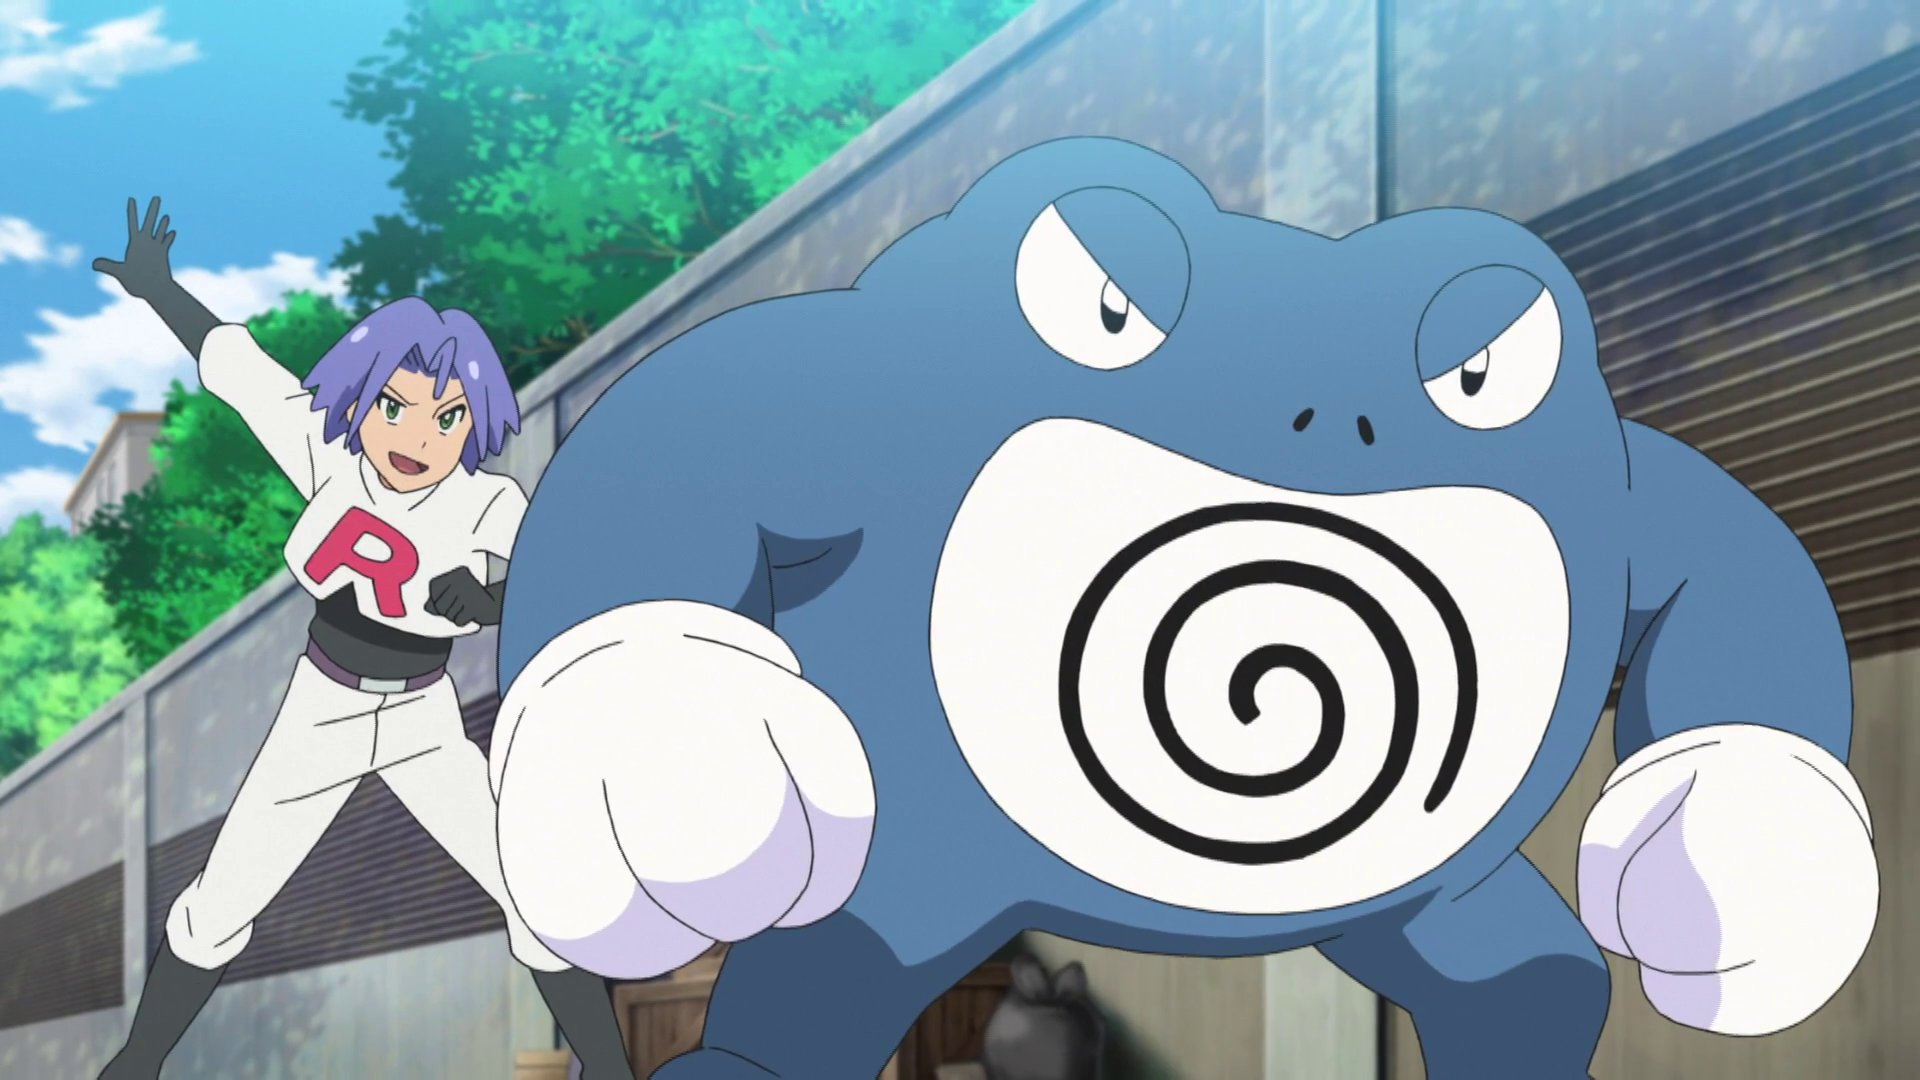 Team Rocket Poliwrath